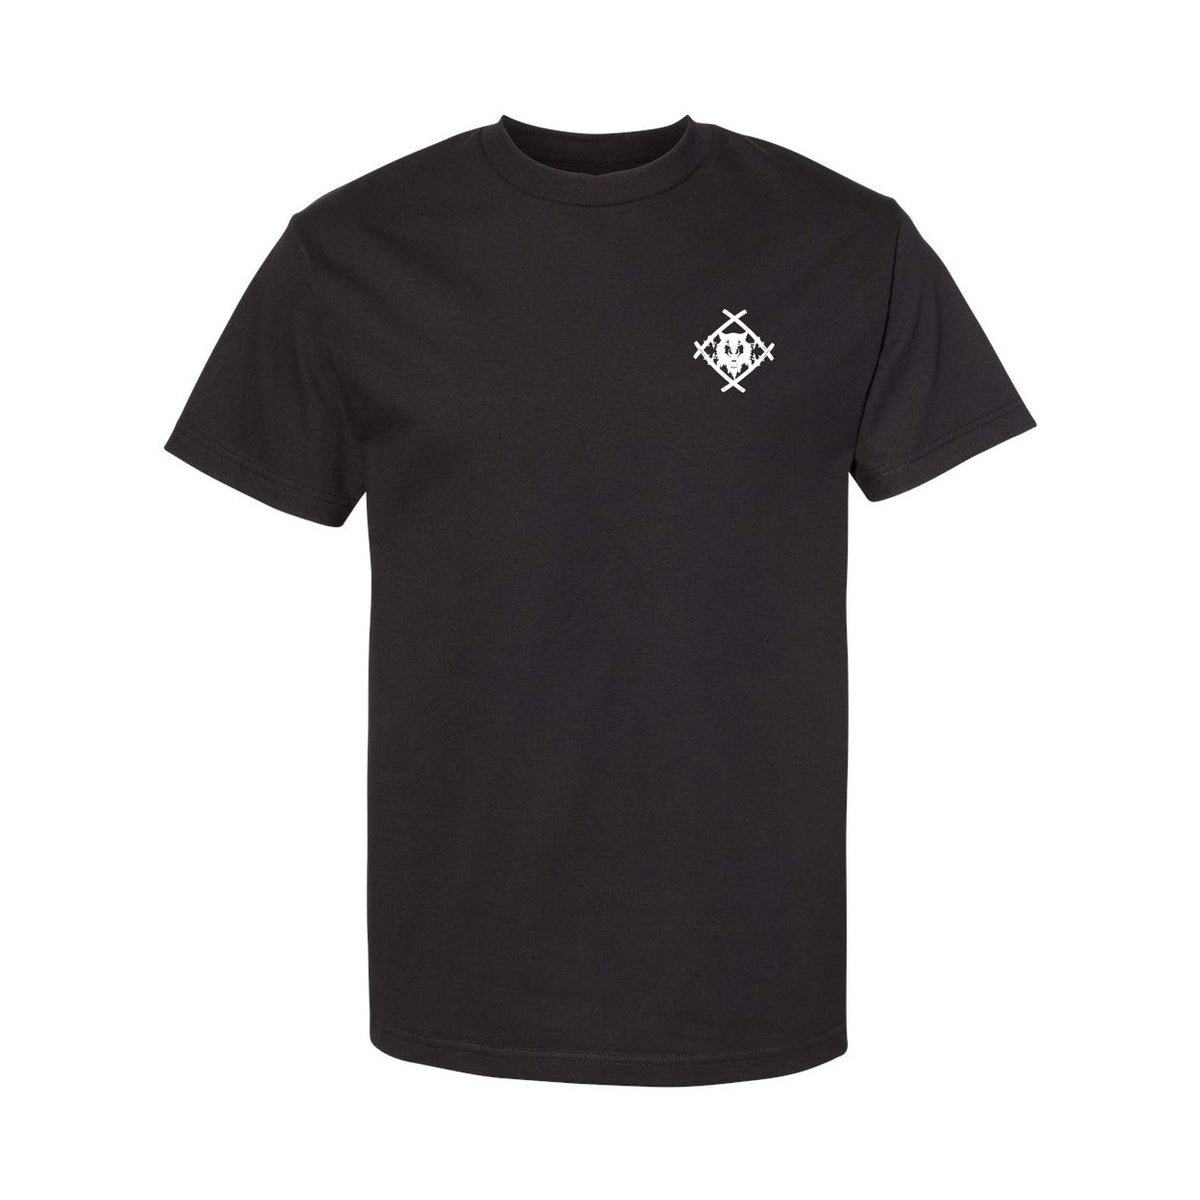 Official Hollowsquad Heavyweight Tee (Black)